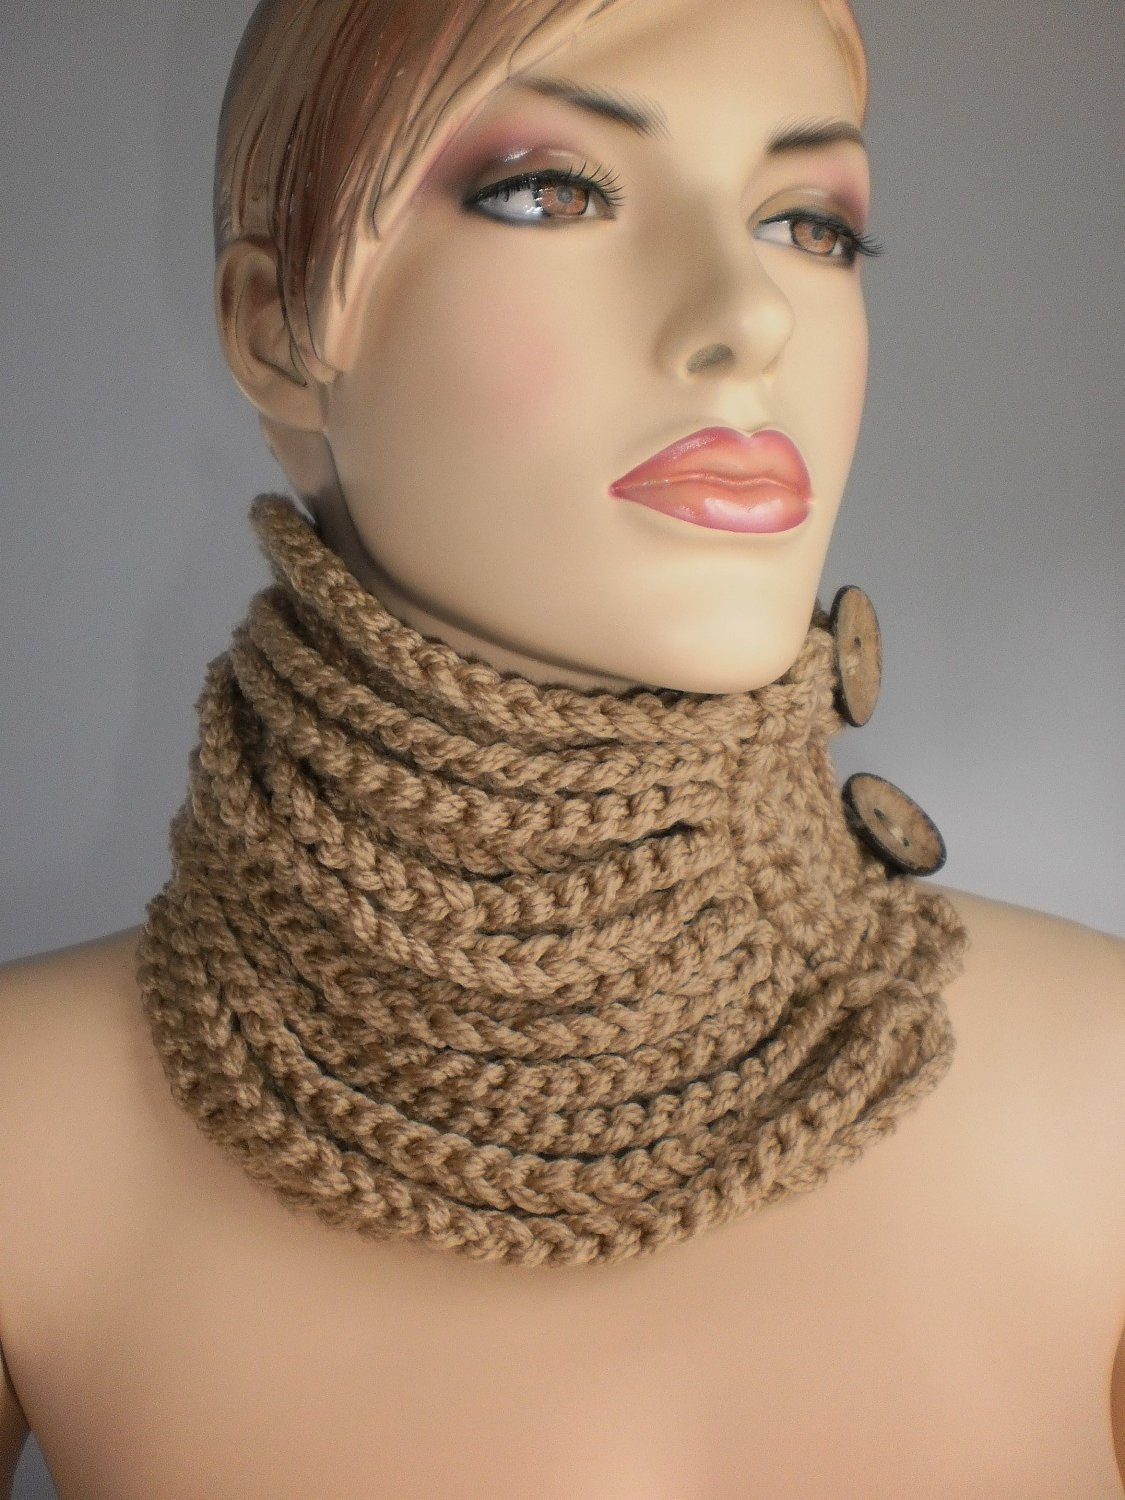 Crochet Neck Scarf Luxury Crochet Cowl Scarf Neck Warmer Winter Accessories Of Great 50 Ideas Crochet Neck Scarf